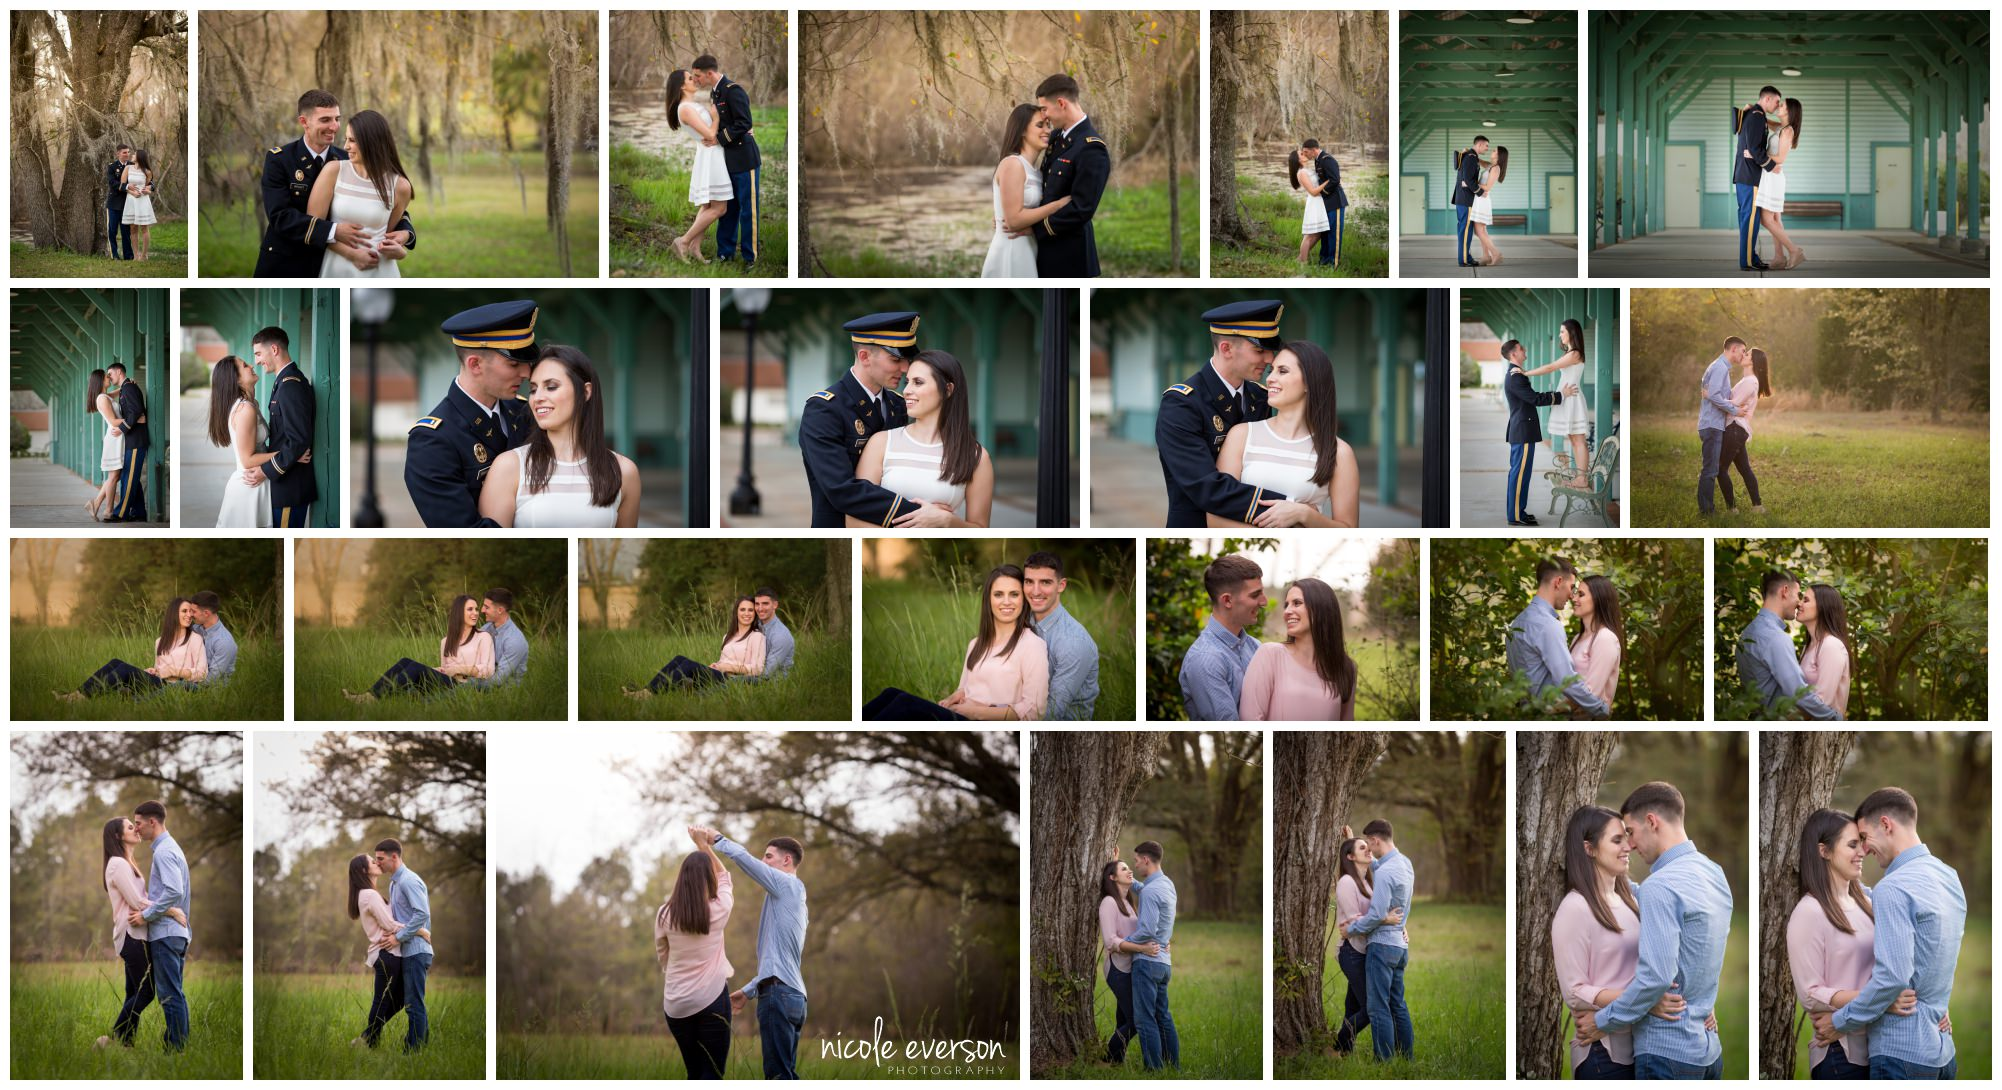 Nicole Everson Photography | Engagement Portraits